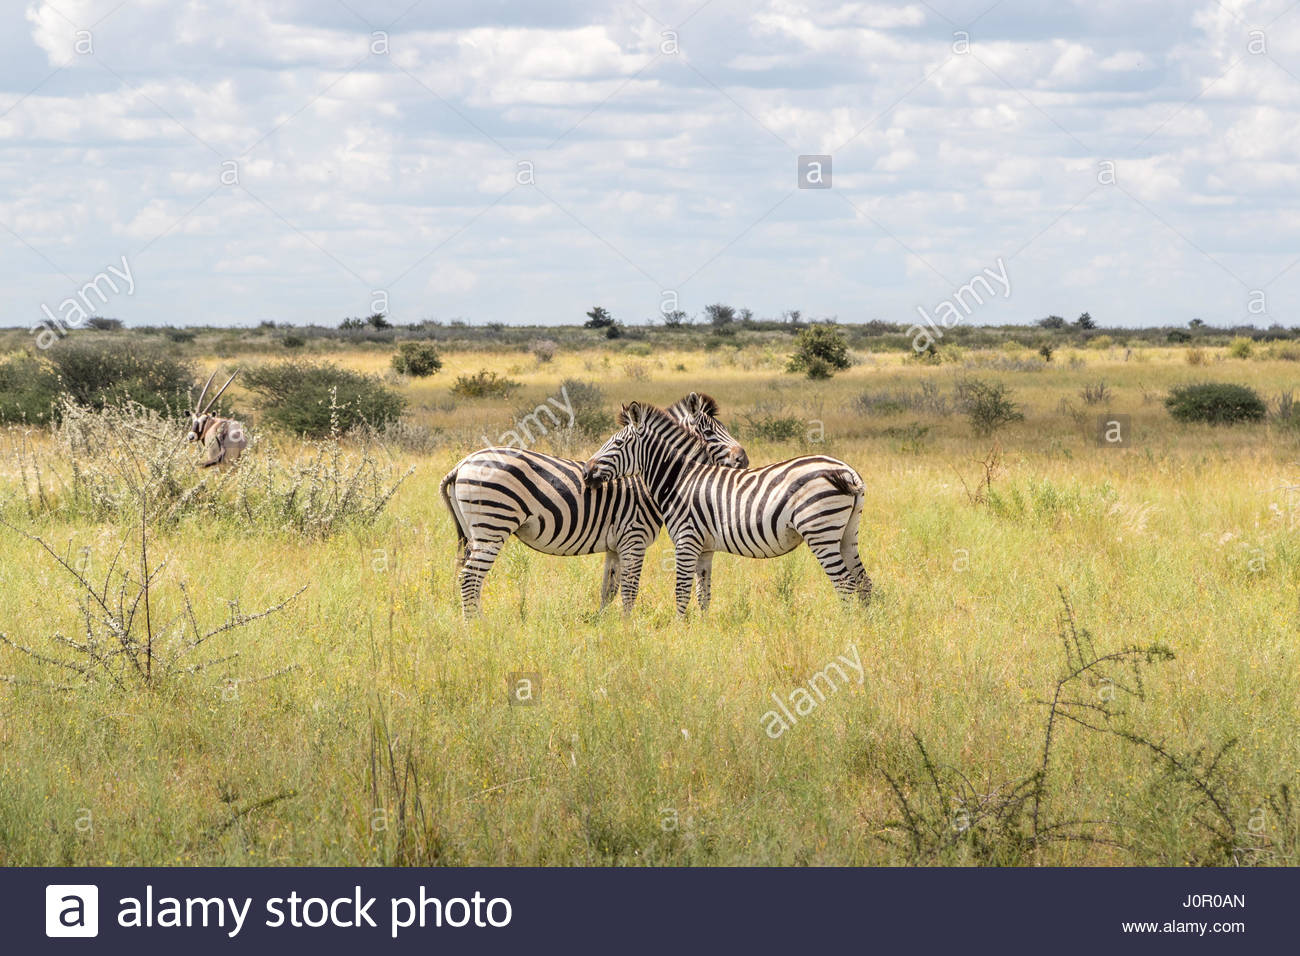 A pair of Zebra displaying typical grooming and chin resting behaviour in Nxai Pans, Botswana - Stock Image